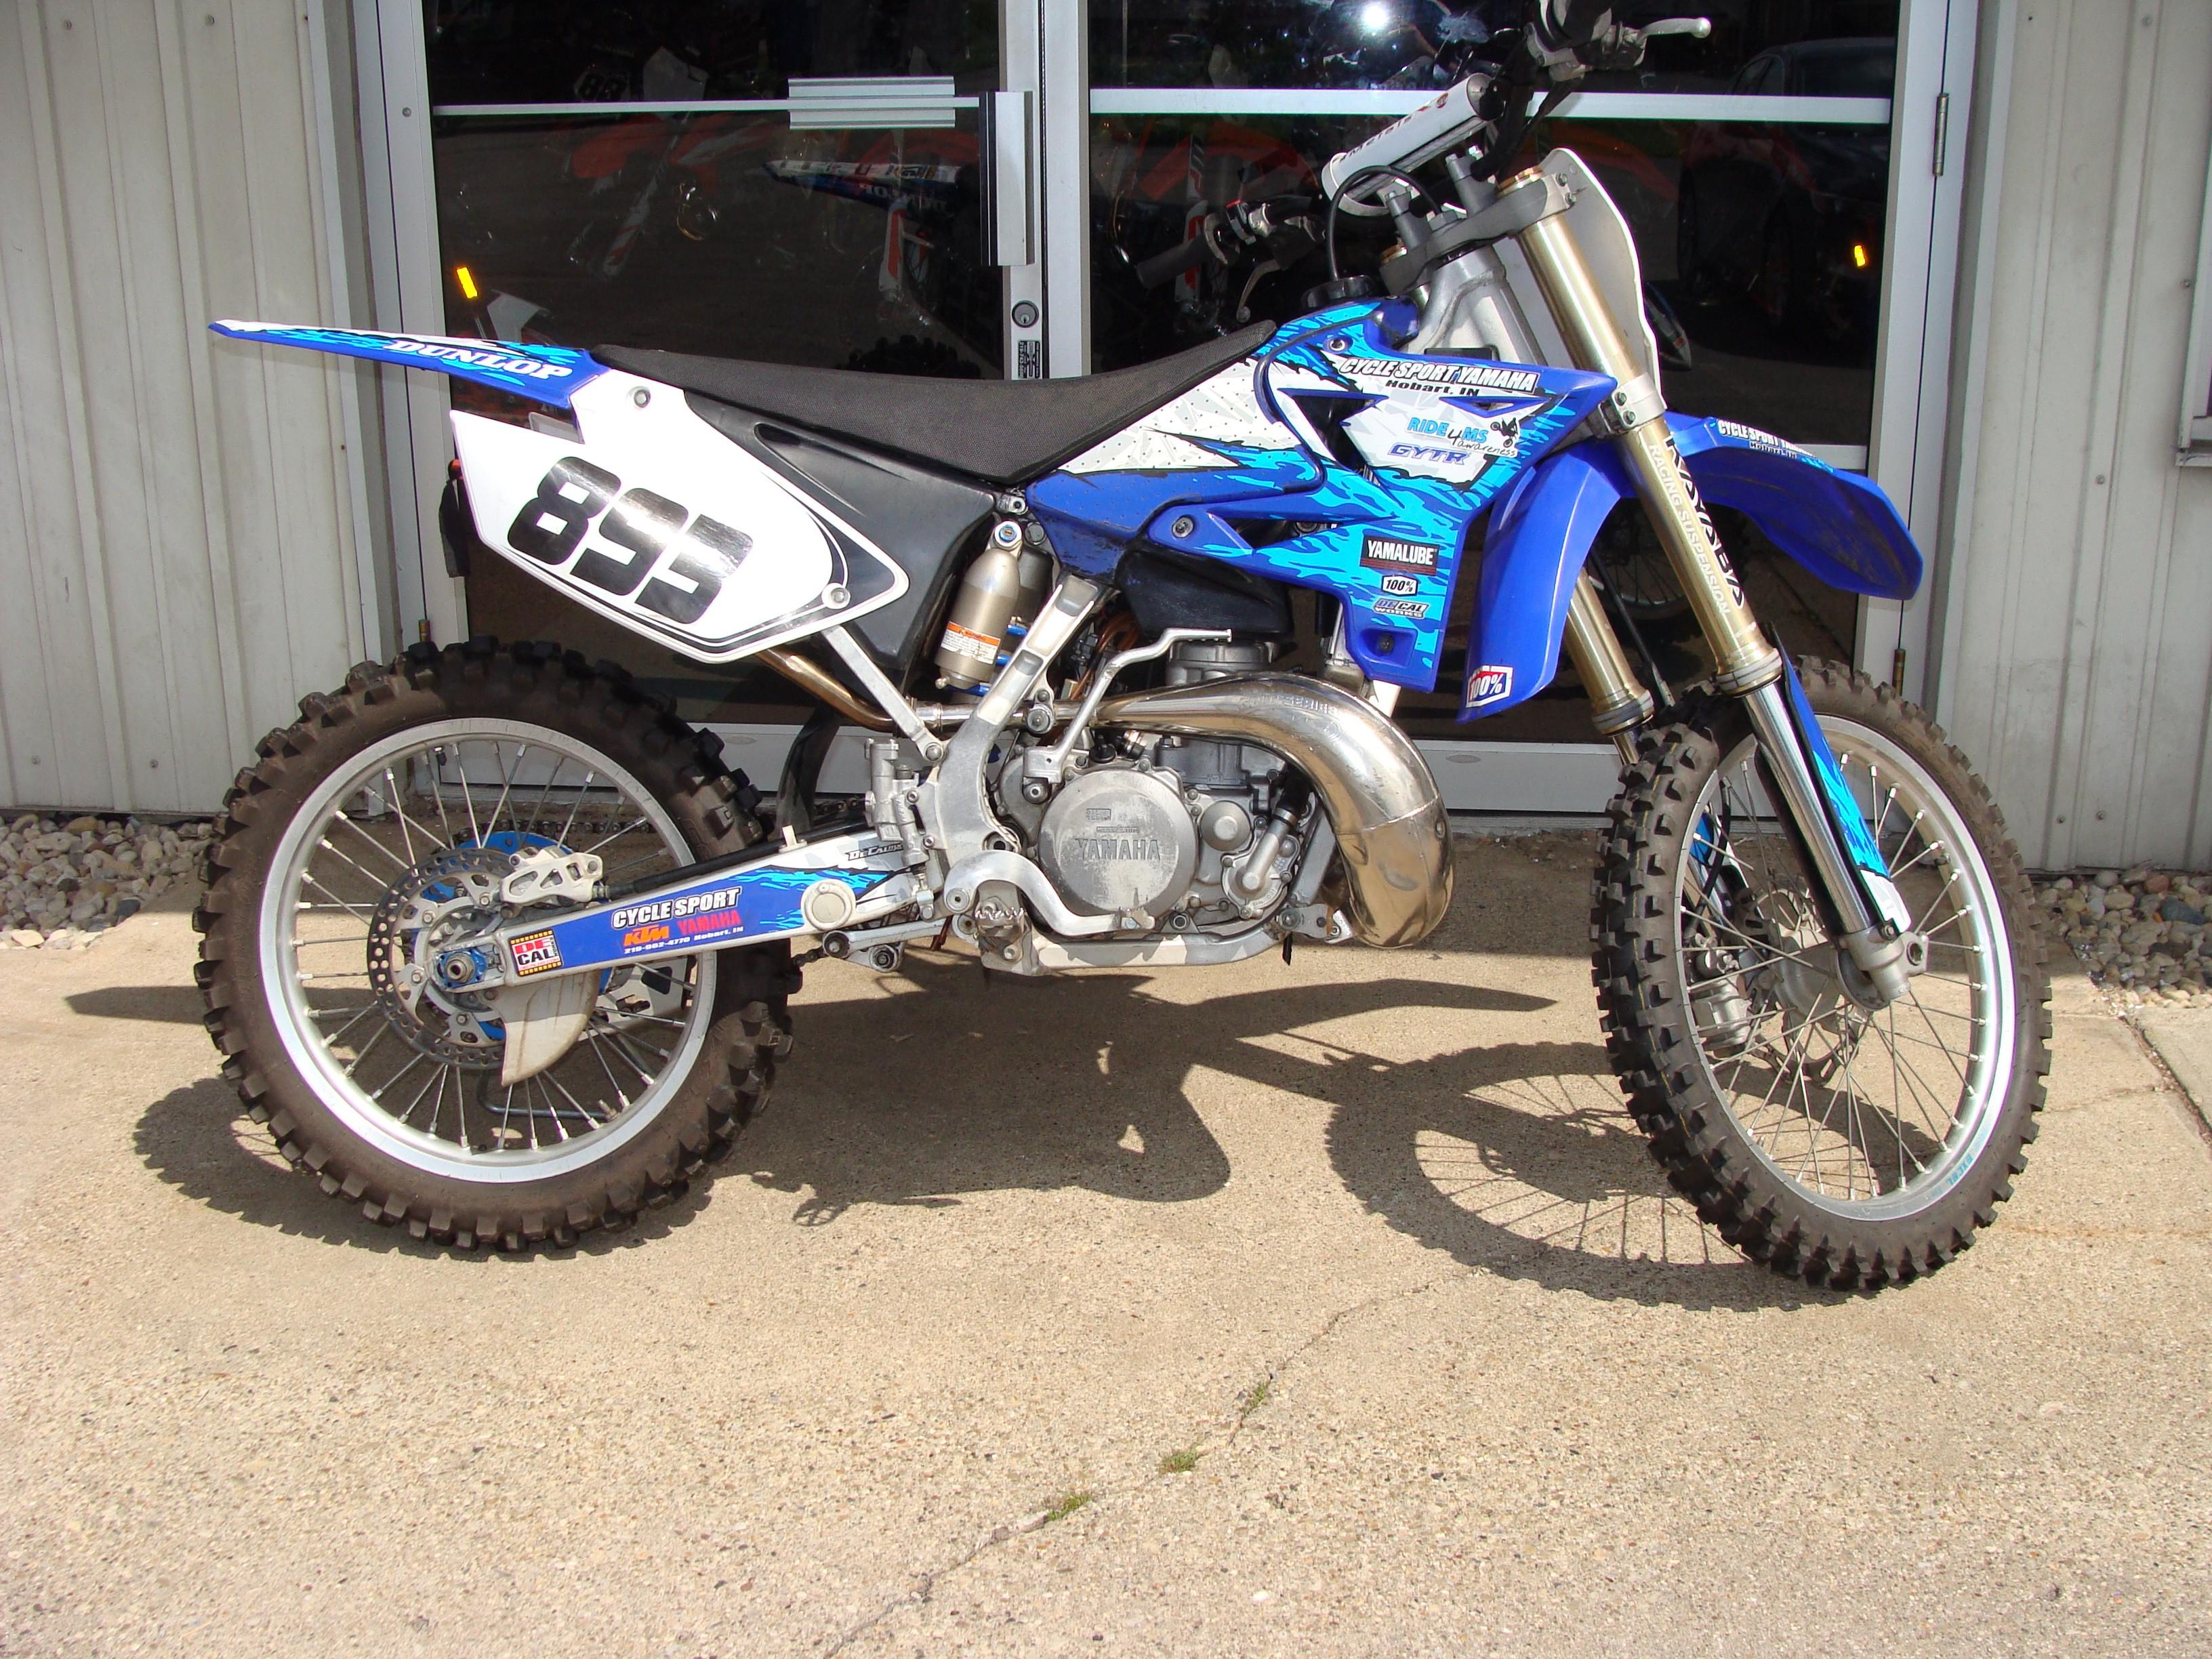 Used Inventory For Sale | Cycle Sport Yamaha KTM in Hobart